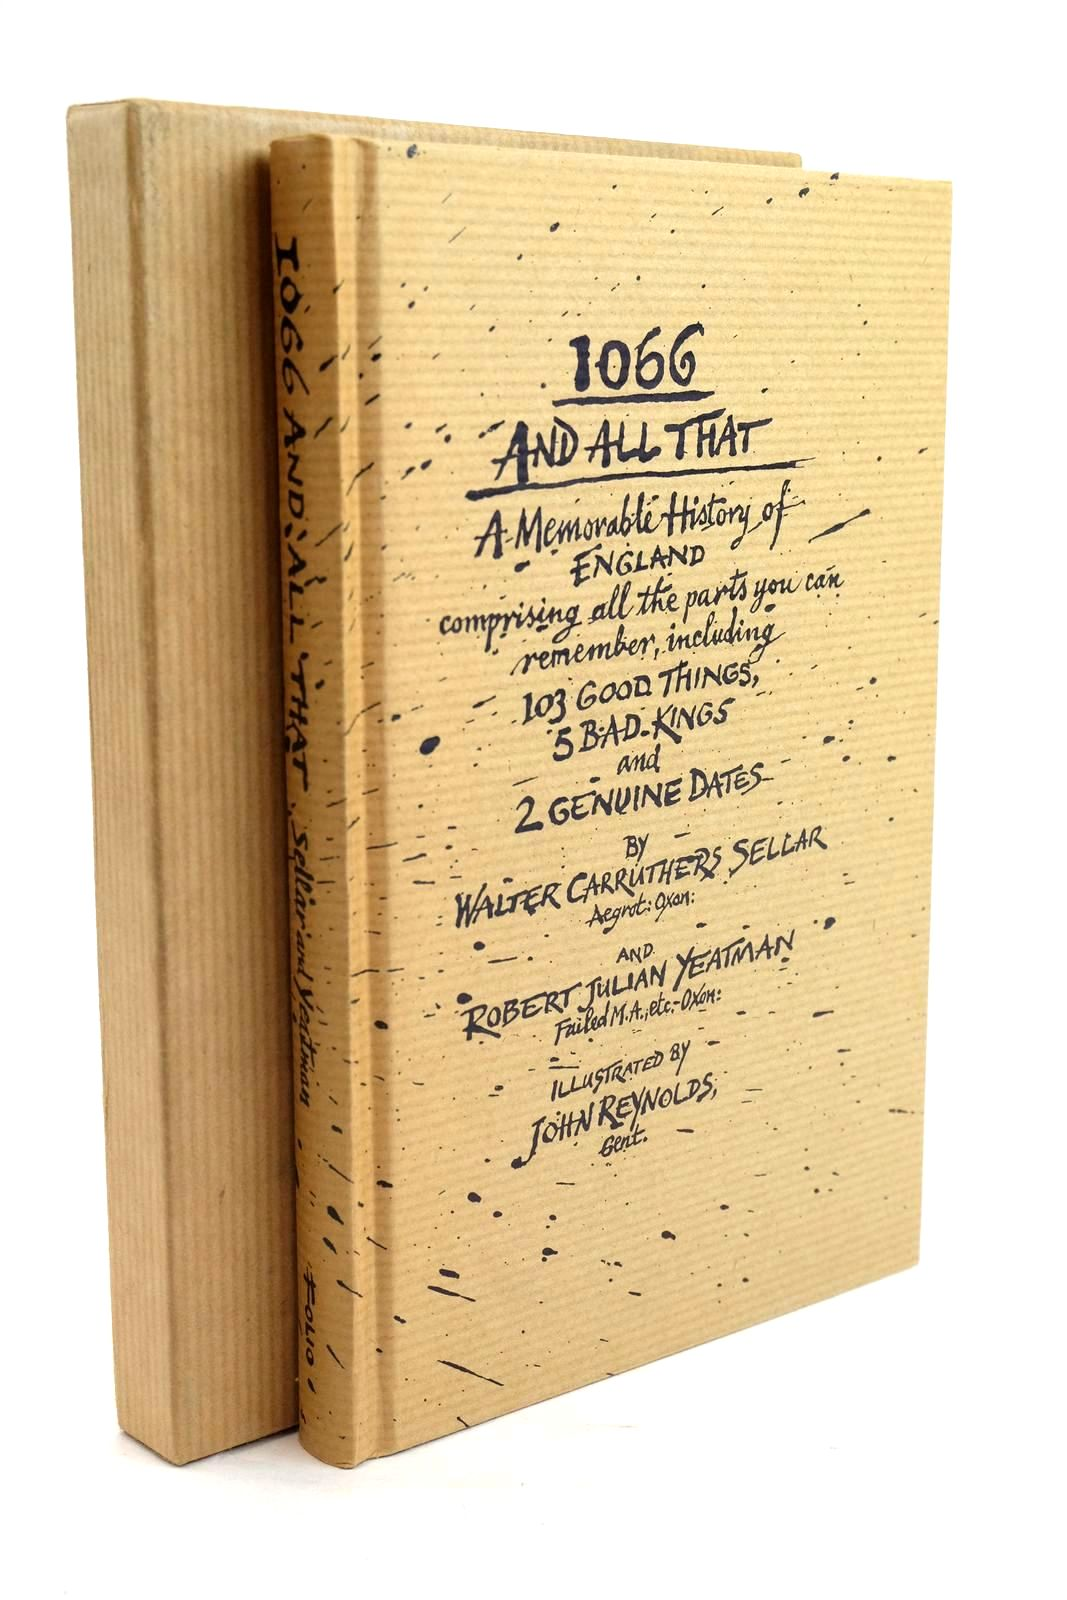 Photo of 1066 AND ALL THAT: A MEMORABLE HISTORY OF ENGLAND written by Sellar, Walter Carruthers Yeatman, Robert Julian illustrated by Reynolds, John published by Folio Society (STOCK CODE: 1319879)  for sale by Stella & Rose's Books